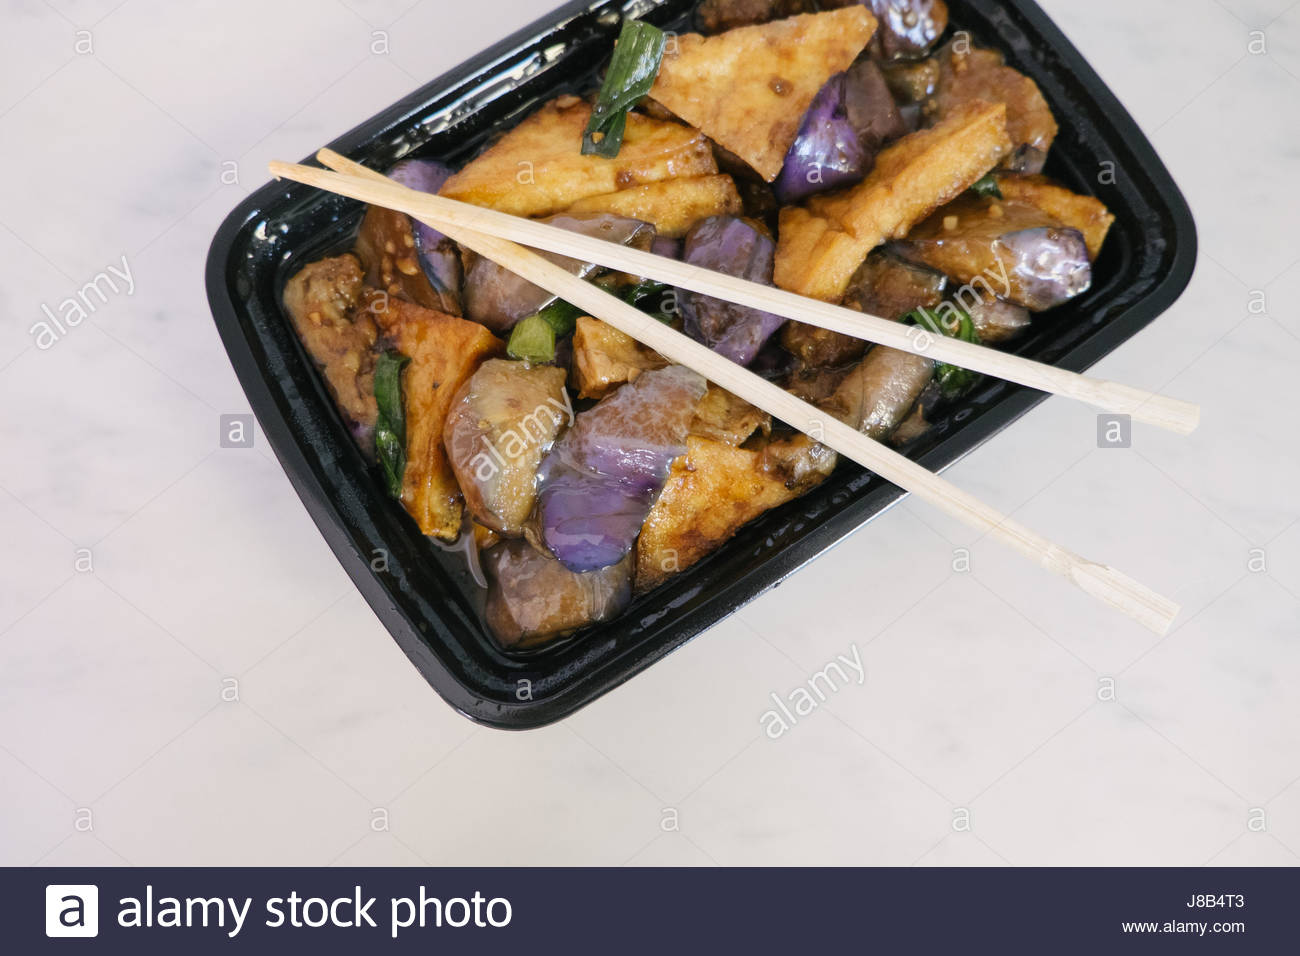 Vegan Chinese food take out on a white marble kitchen counter with stir fried tofu and eggplants. - Stock Image